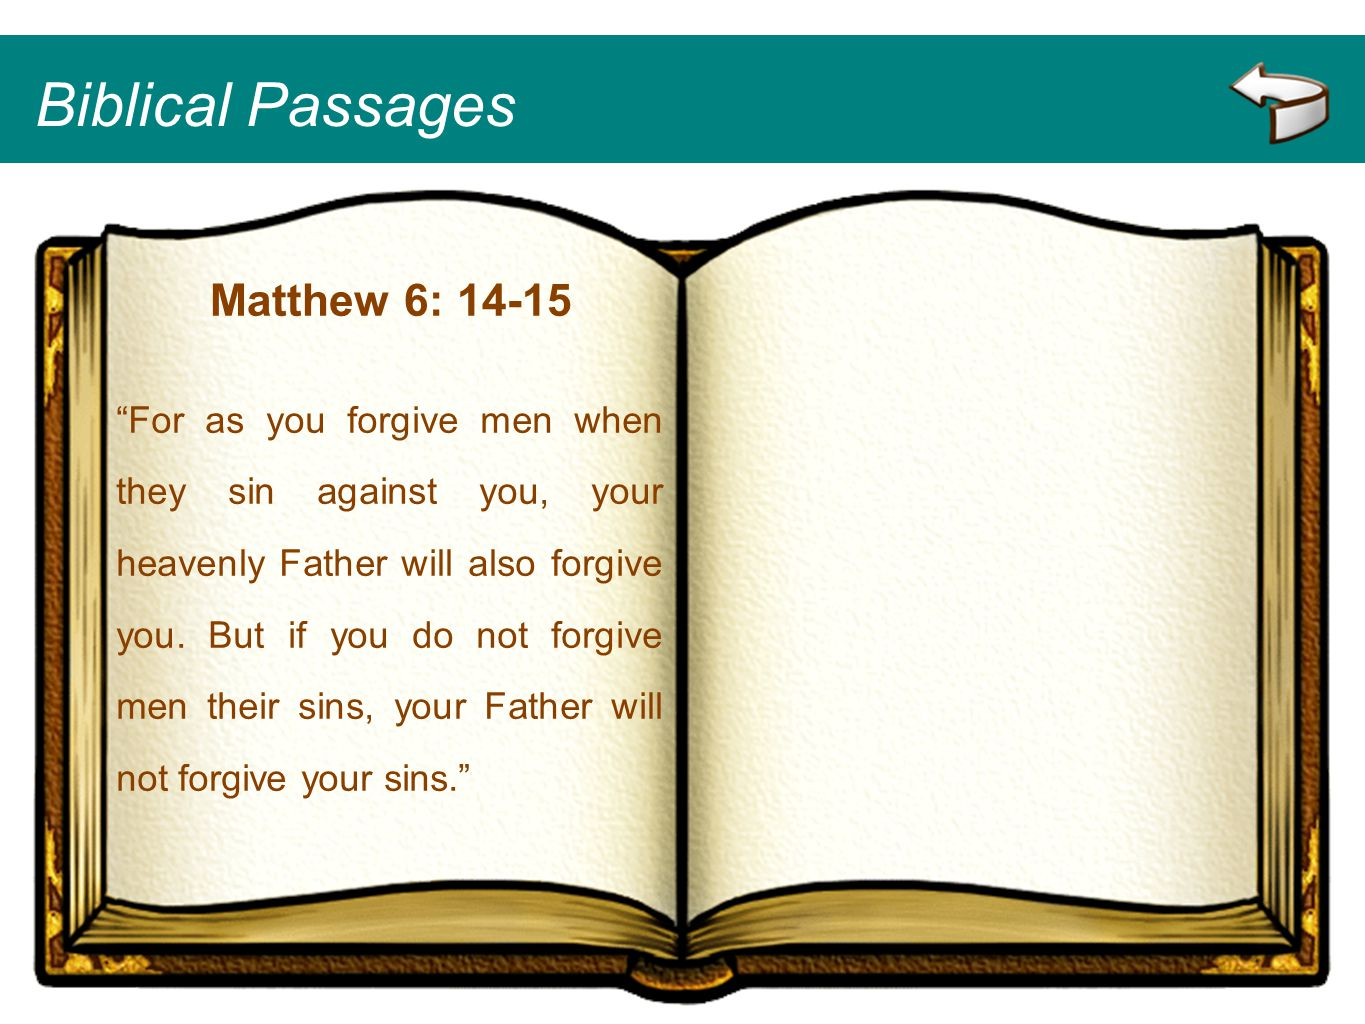 Biblical Passages Matthew 6: 14-15